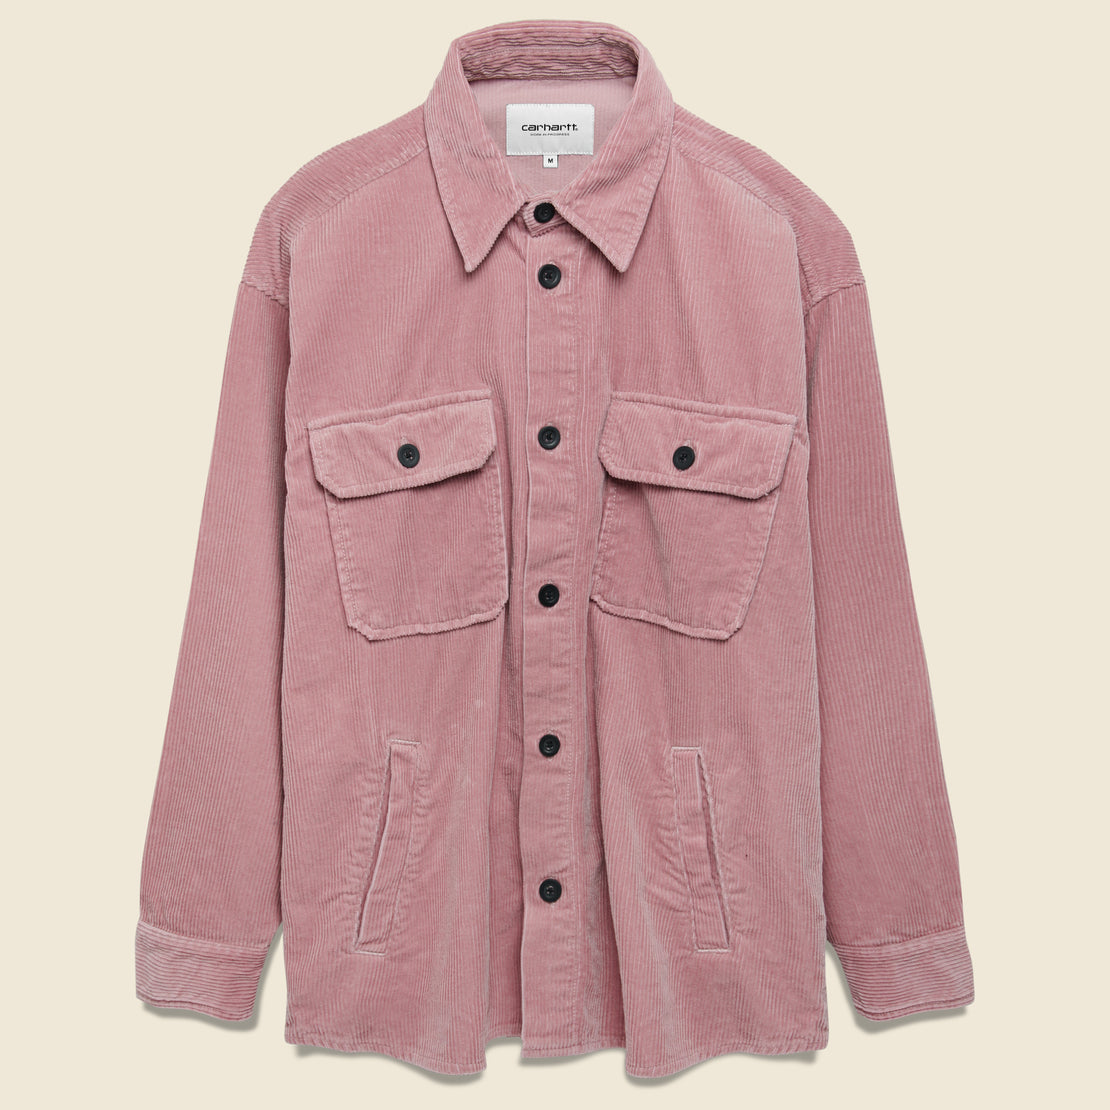 Carhartt WIP Erie Shirt Jacket - Blush